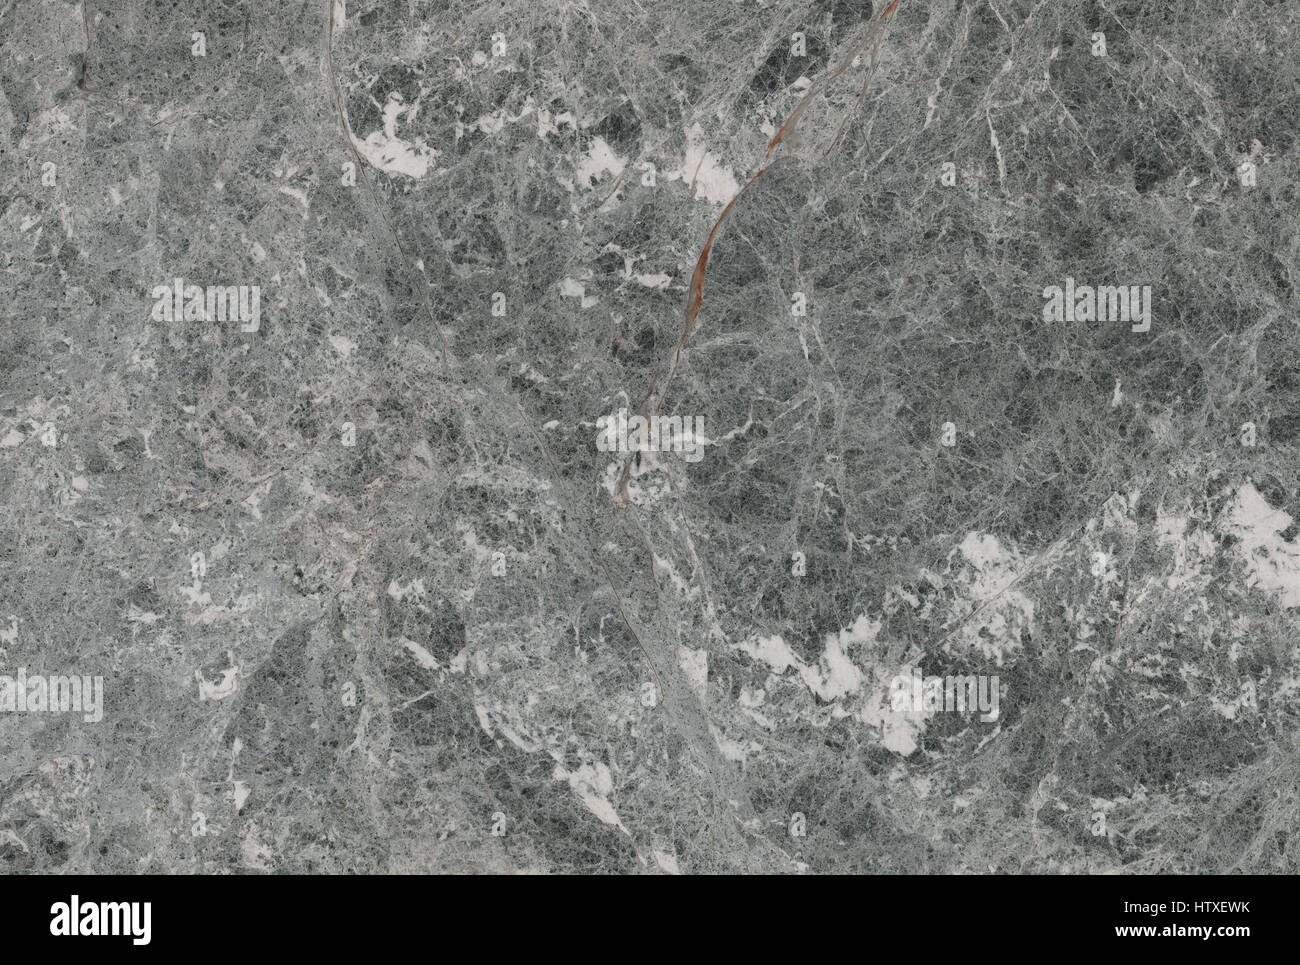 Dark Grey Marble Texture High Resolution Stock Photography And Images Alamy